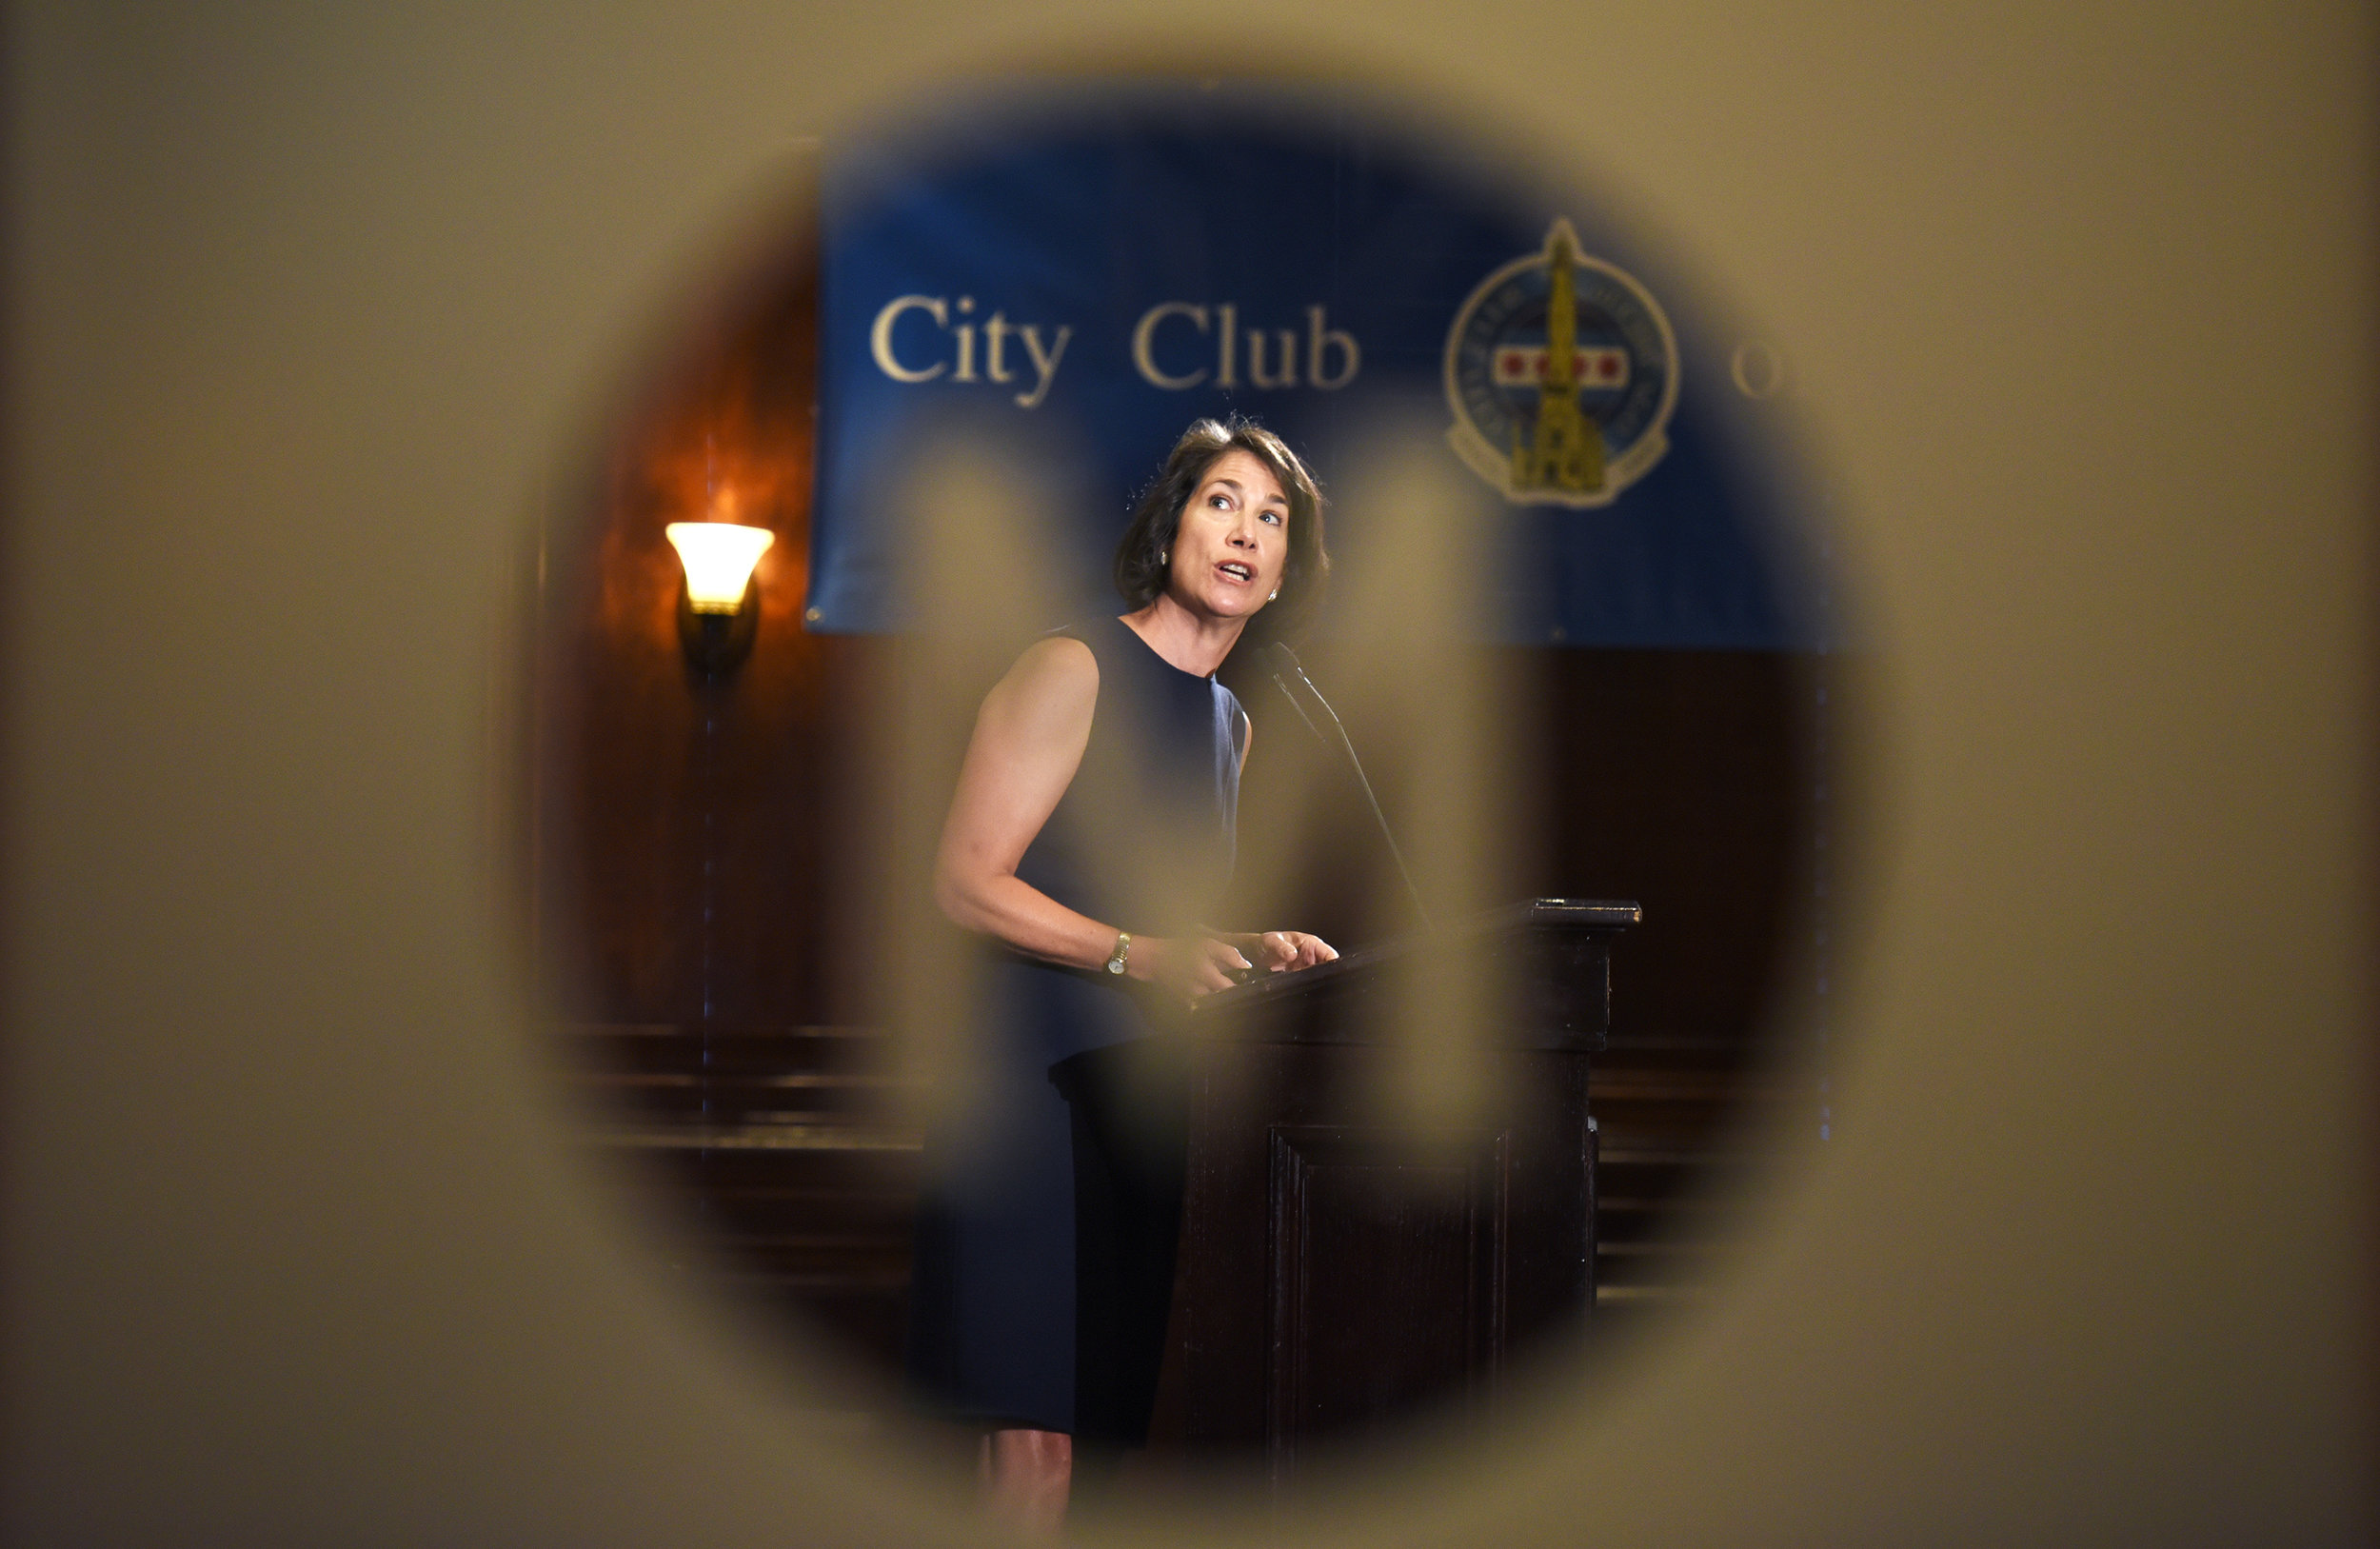 Illinois first lady Diana Rauner speaks to the City Club of Chicago on Monday, June 26, 2017, in Chicago in her role as president of the Ounce of Prevention Fund, a public-private group that prepares children for school. (AP Photo/G-Jun Yam)